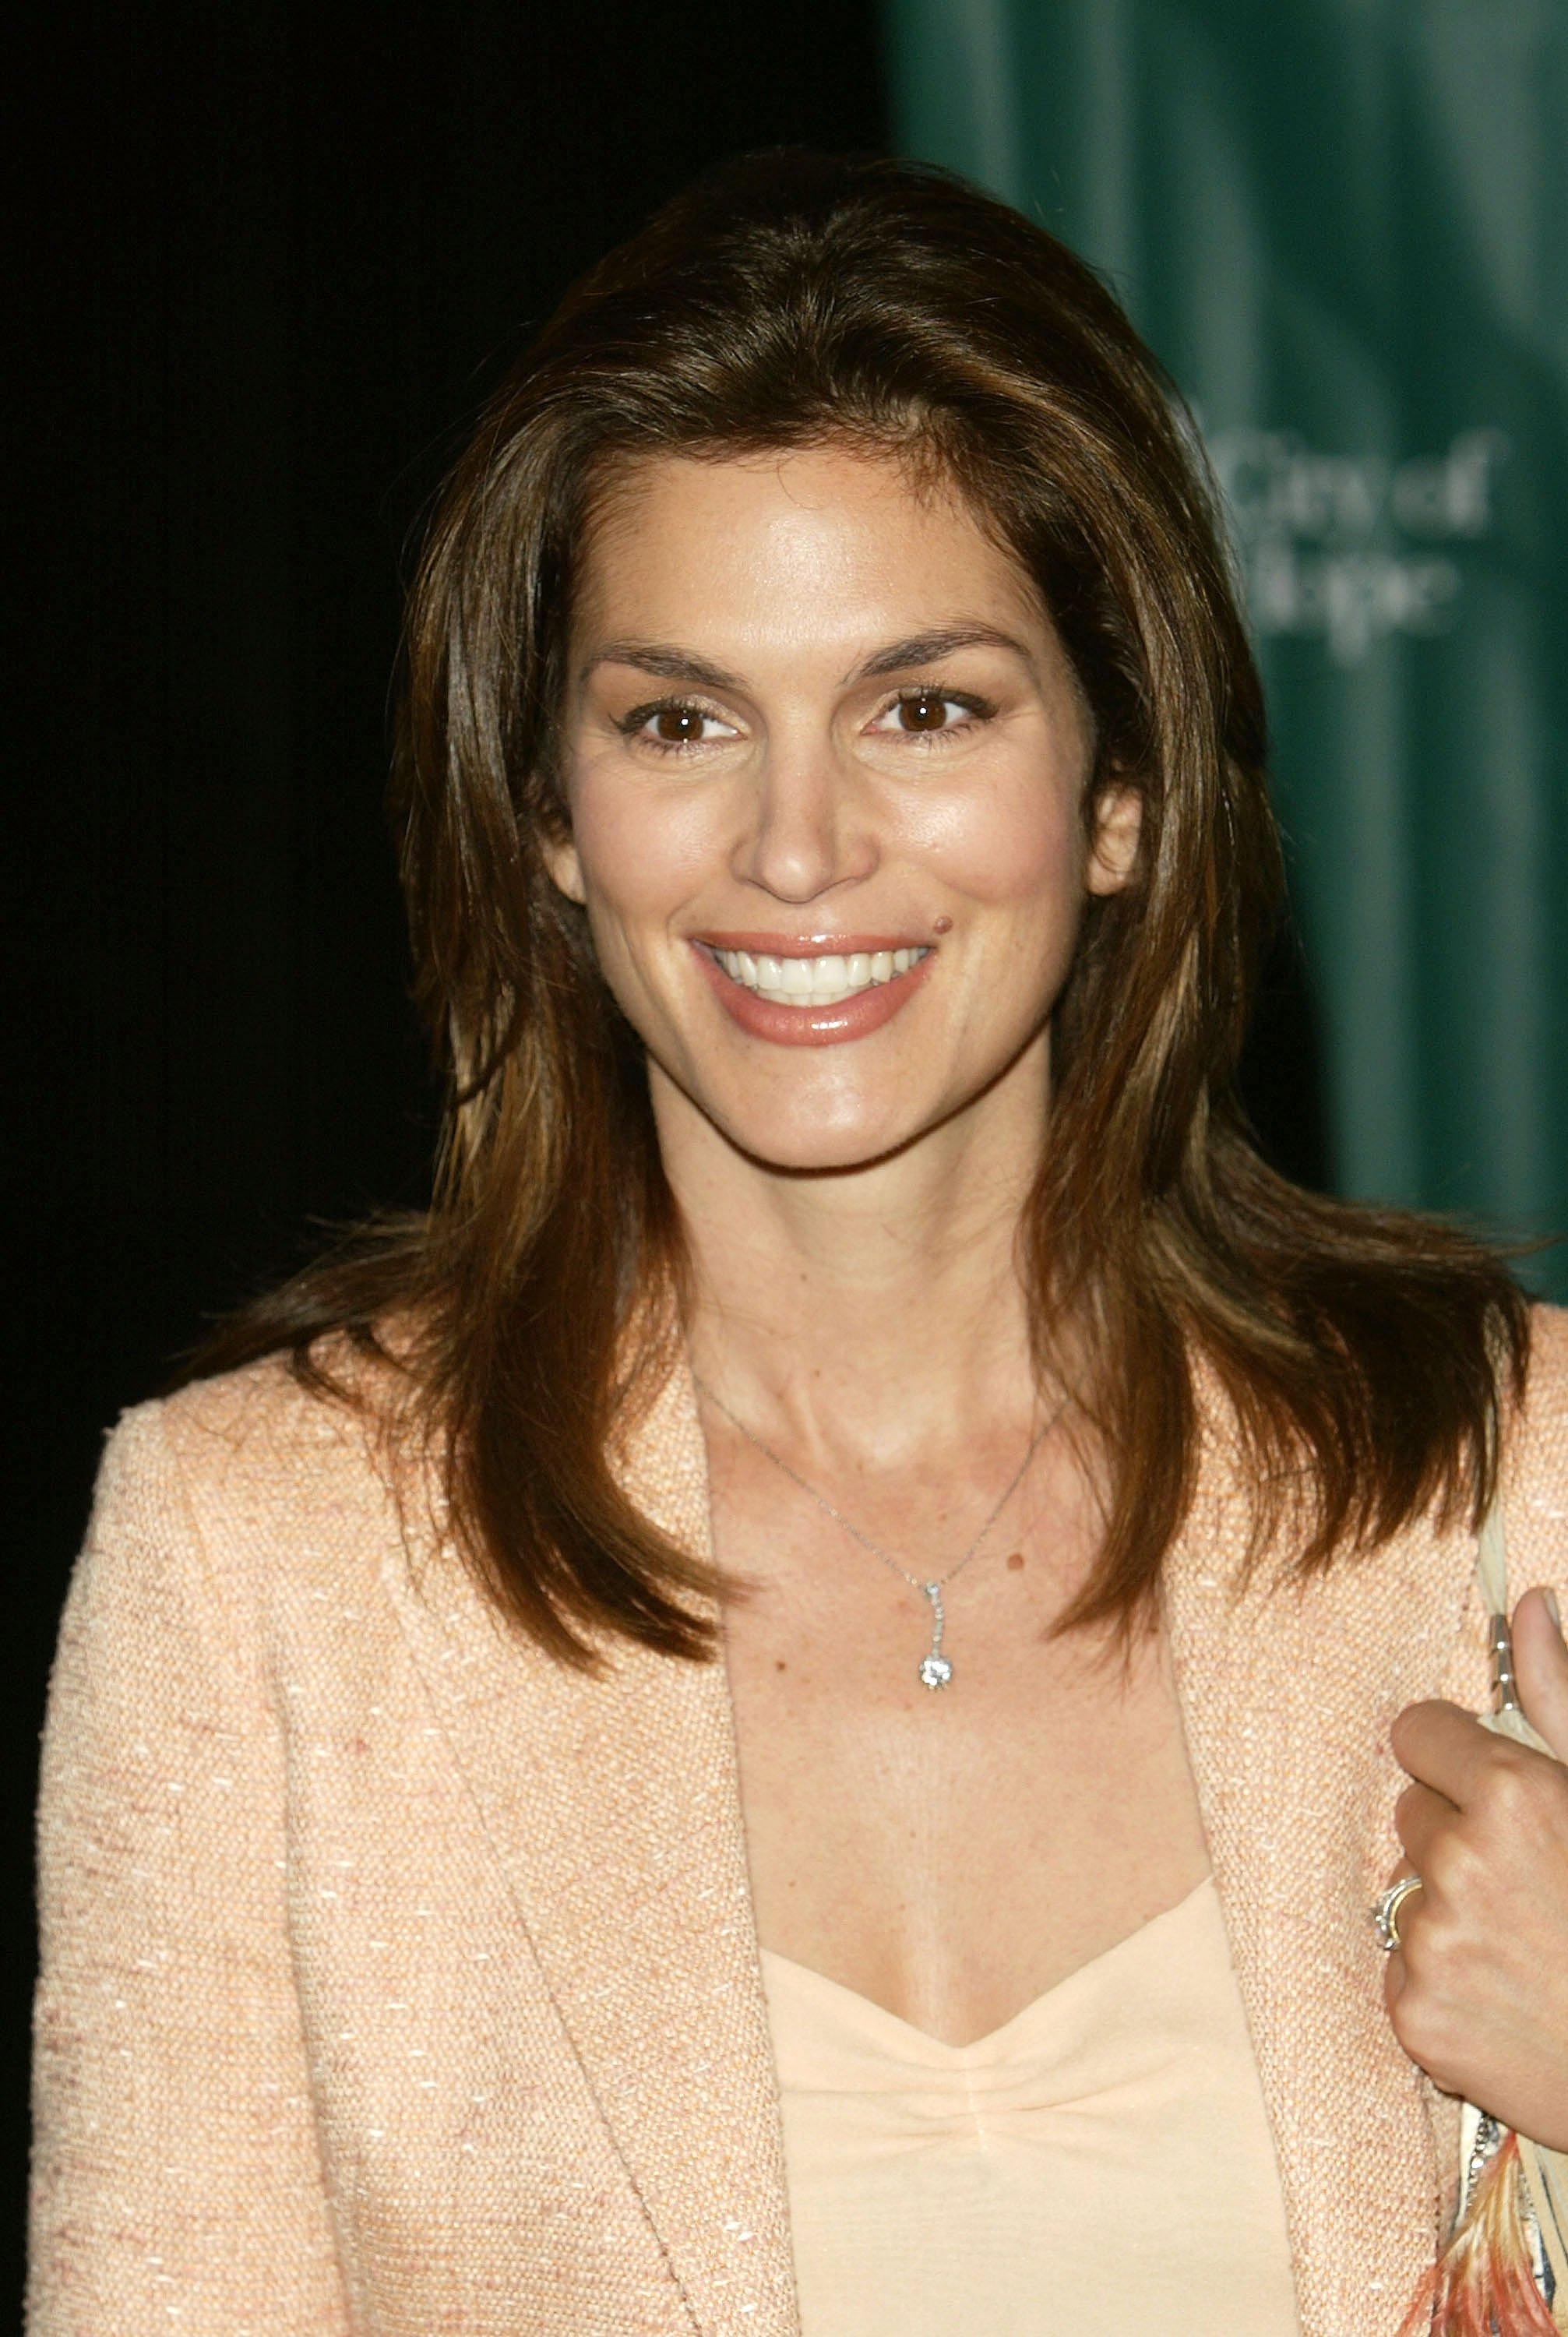 Cindy Crawford attends the City of Hope 2004 Spirit of Life Luncheon where she was named City of Hope's woman of the year. | Source: Getty Images